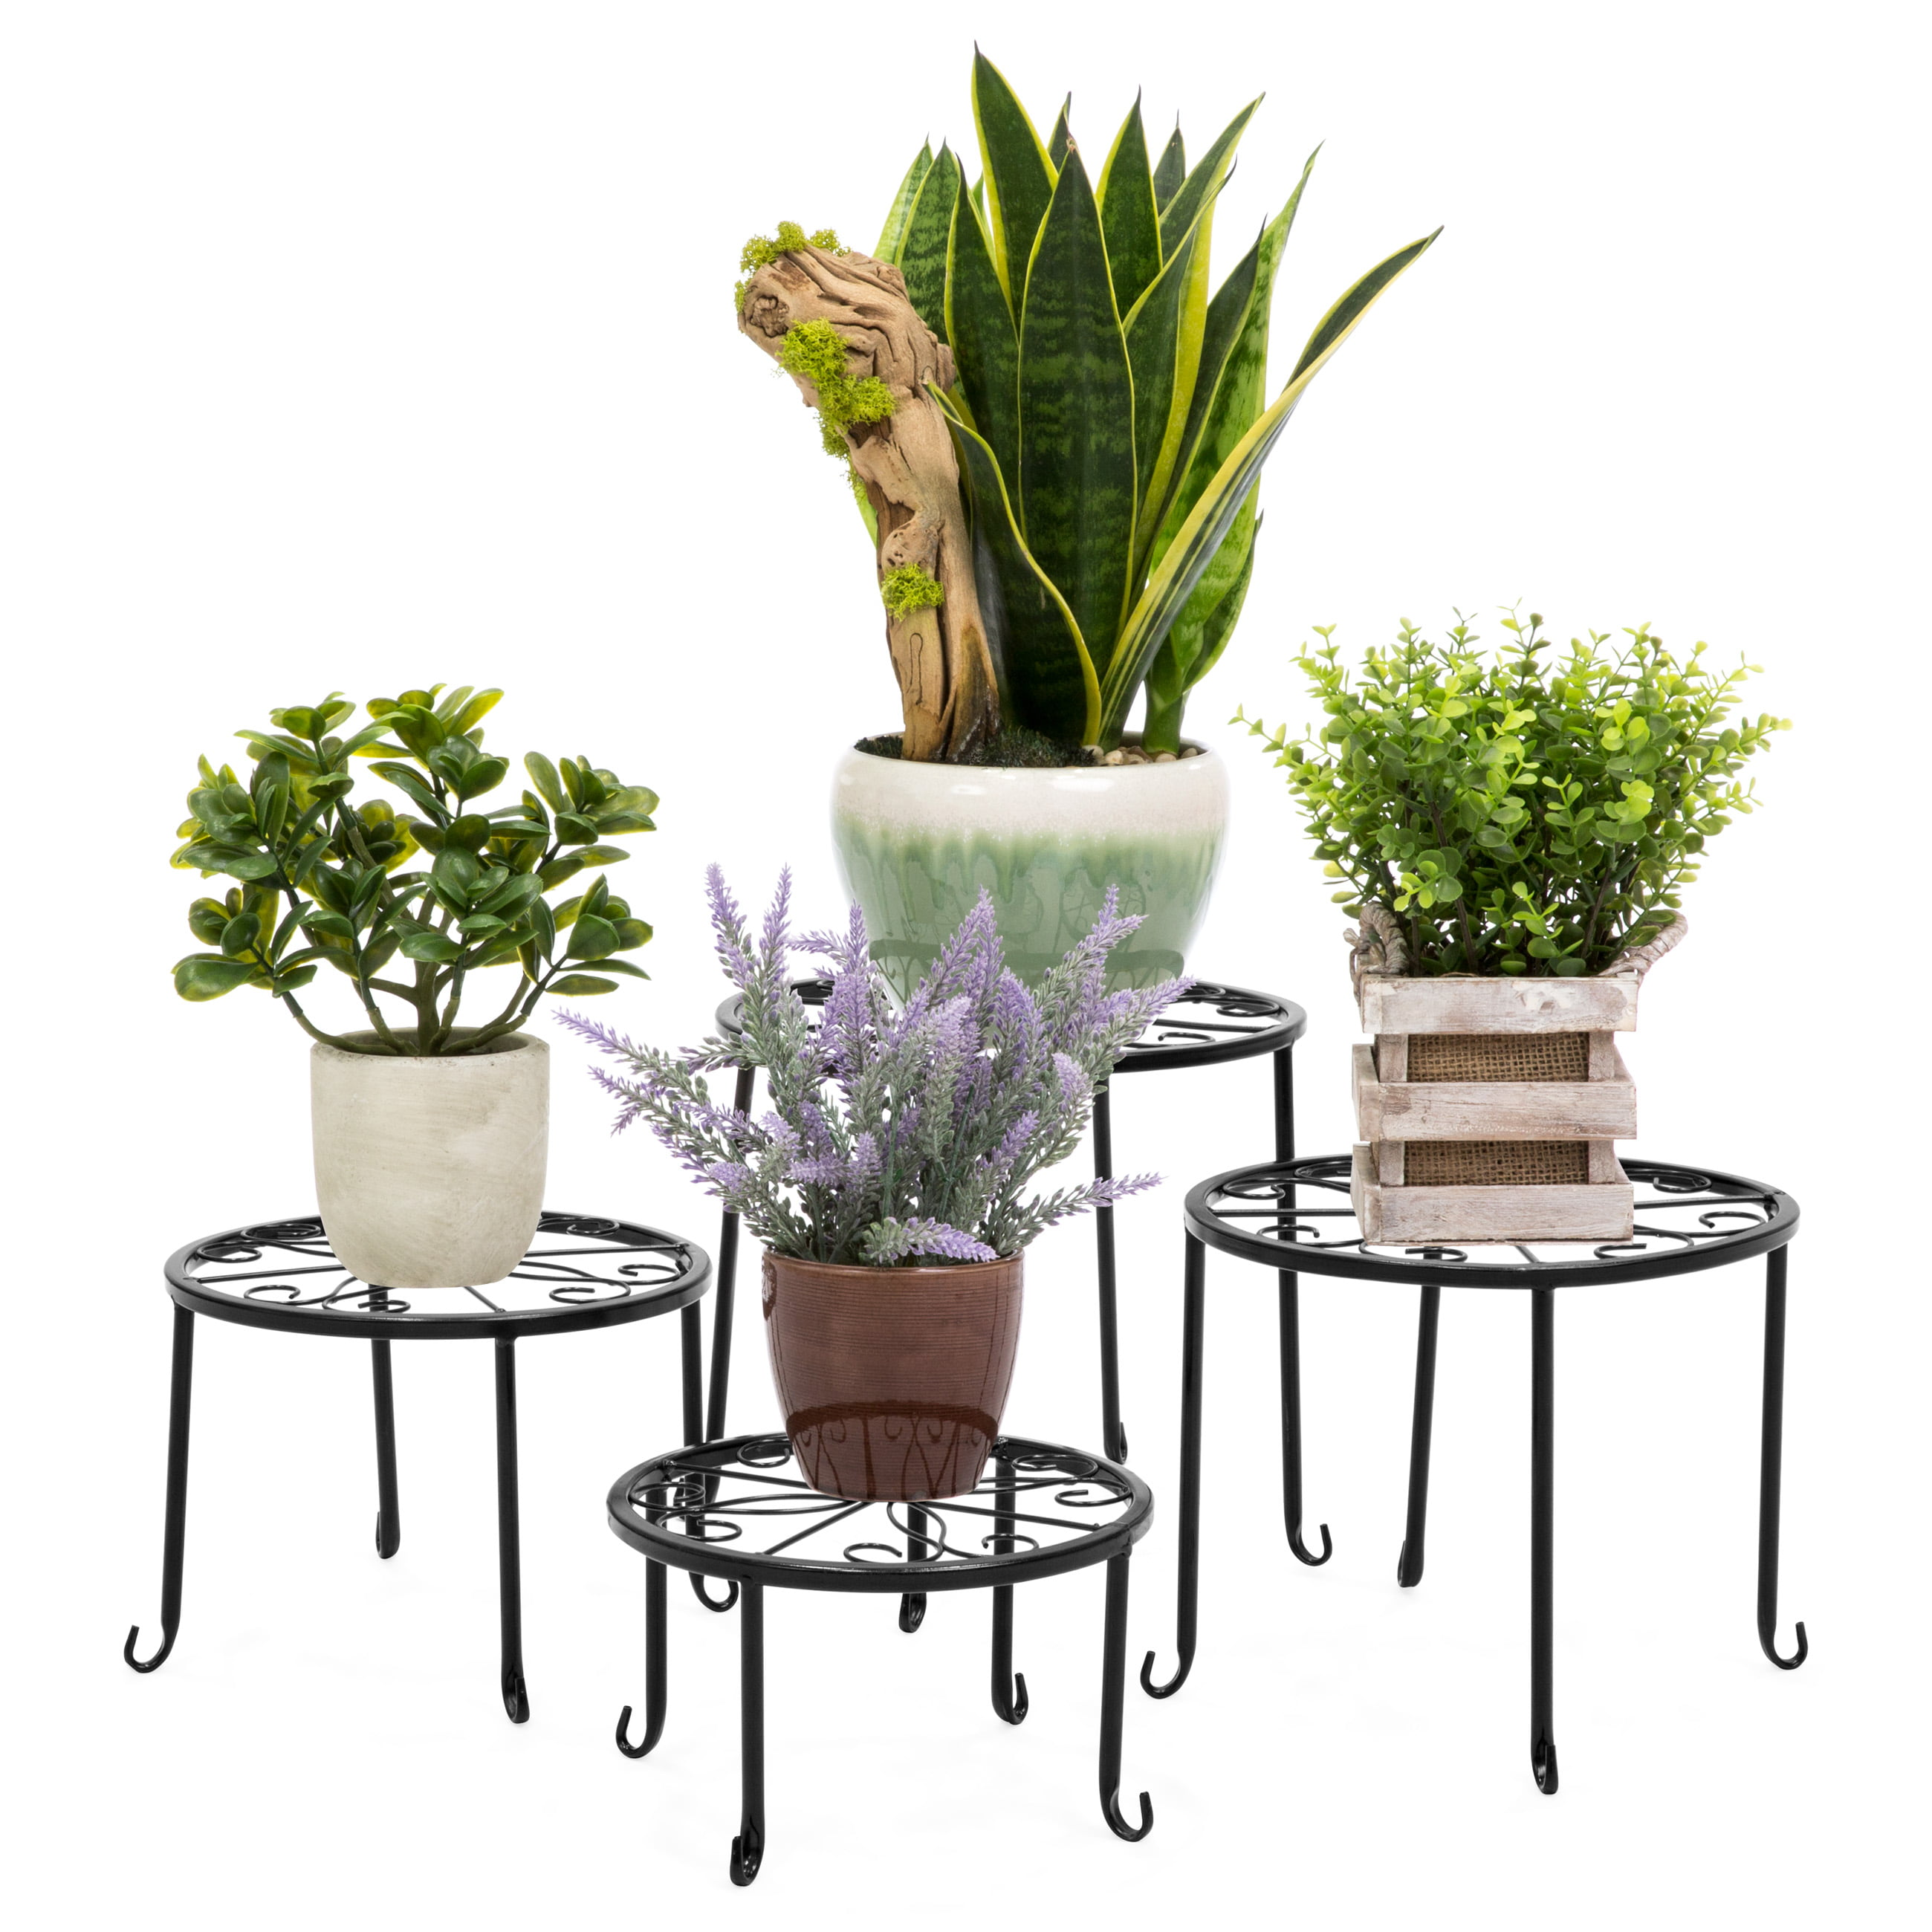 Best Choice Products Decorative Nesting Plant Stand Set Of 4 Black